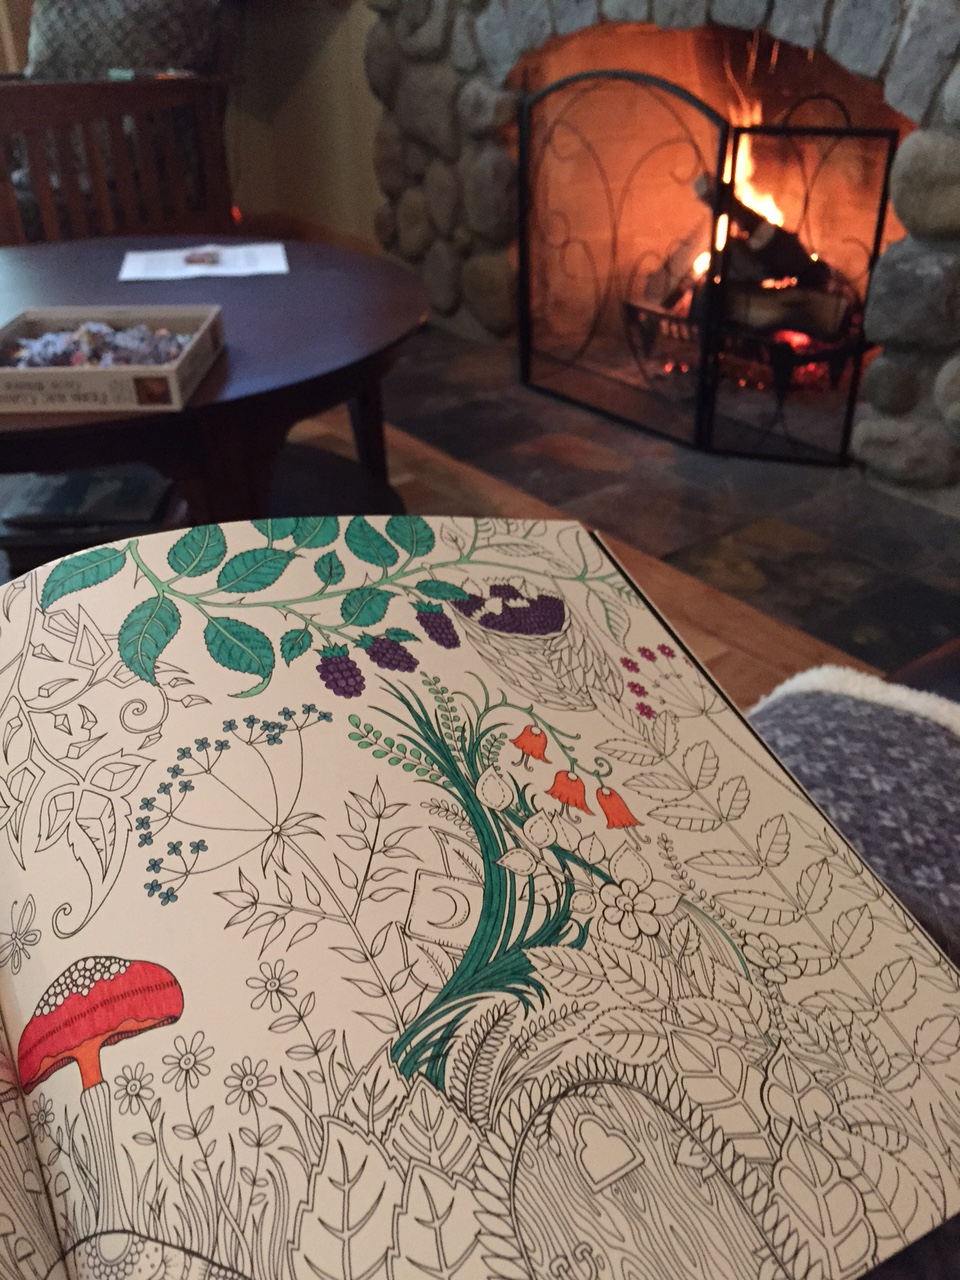 Coloring By The Fire At Cabin On Memorial Day Weekend For Grown Ups Is